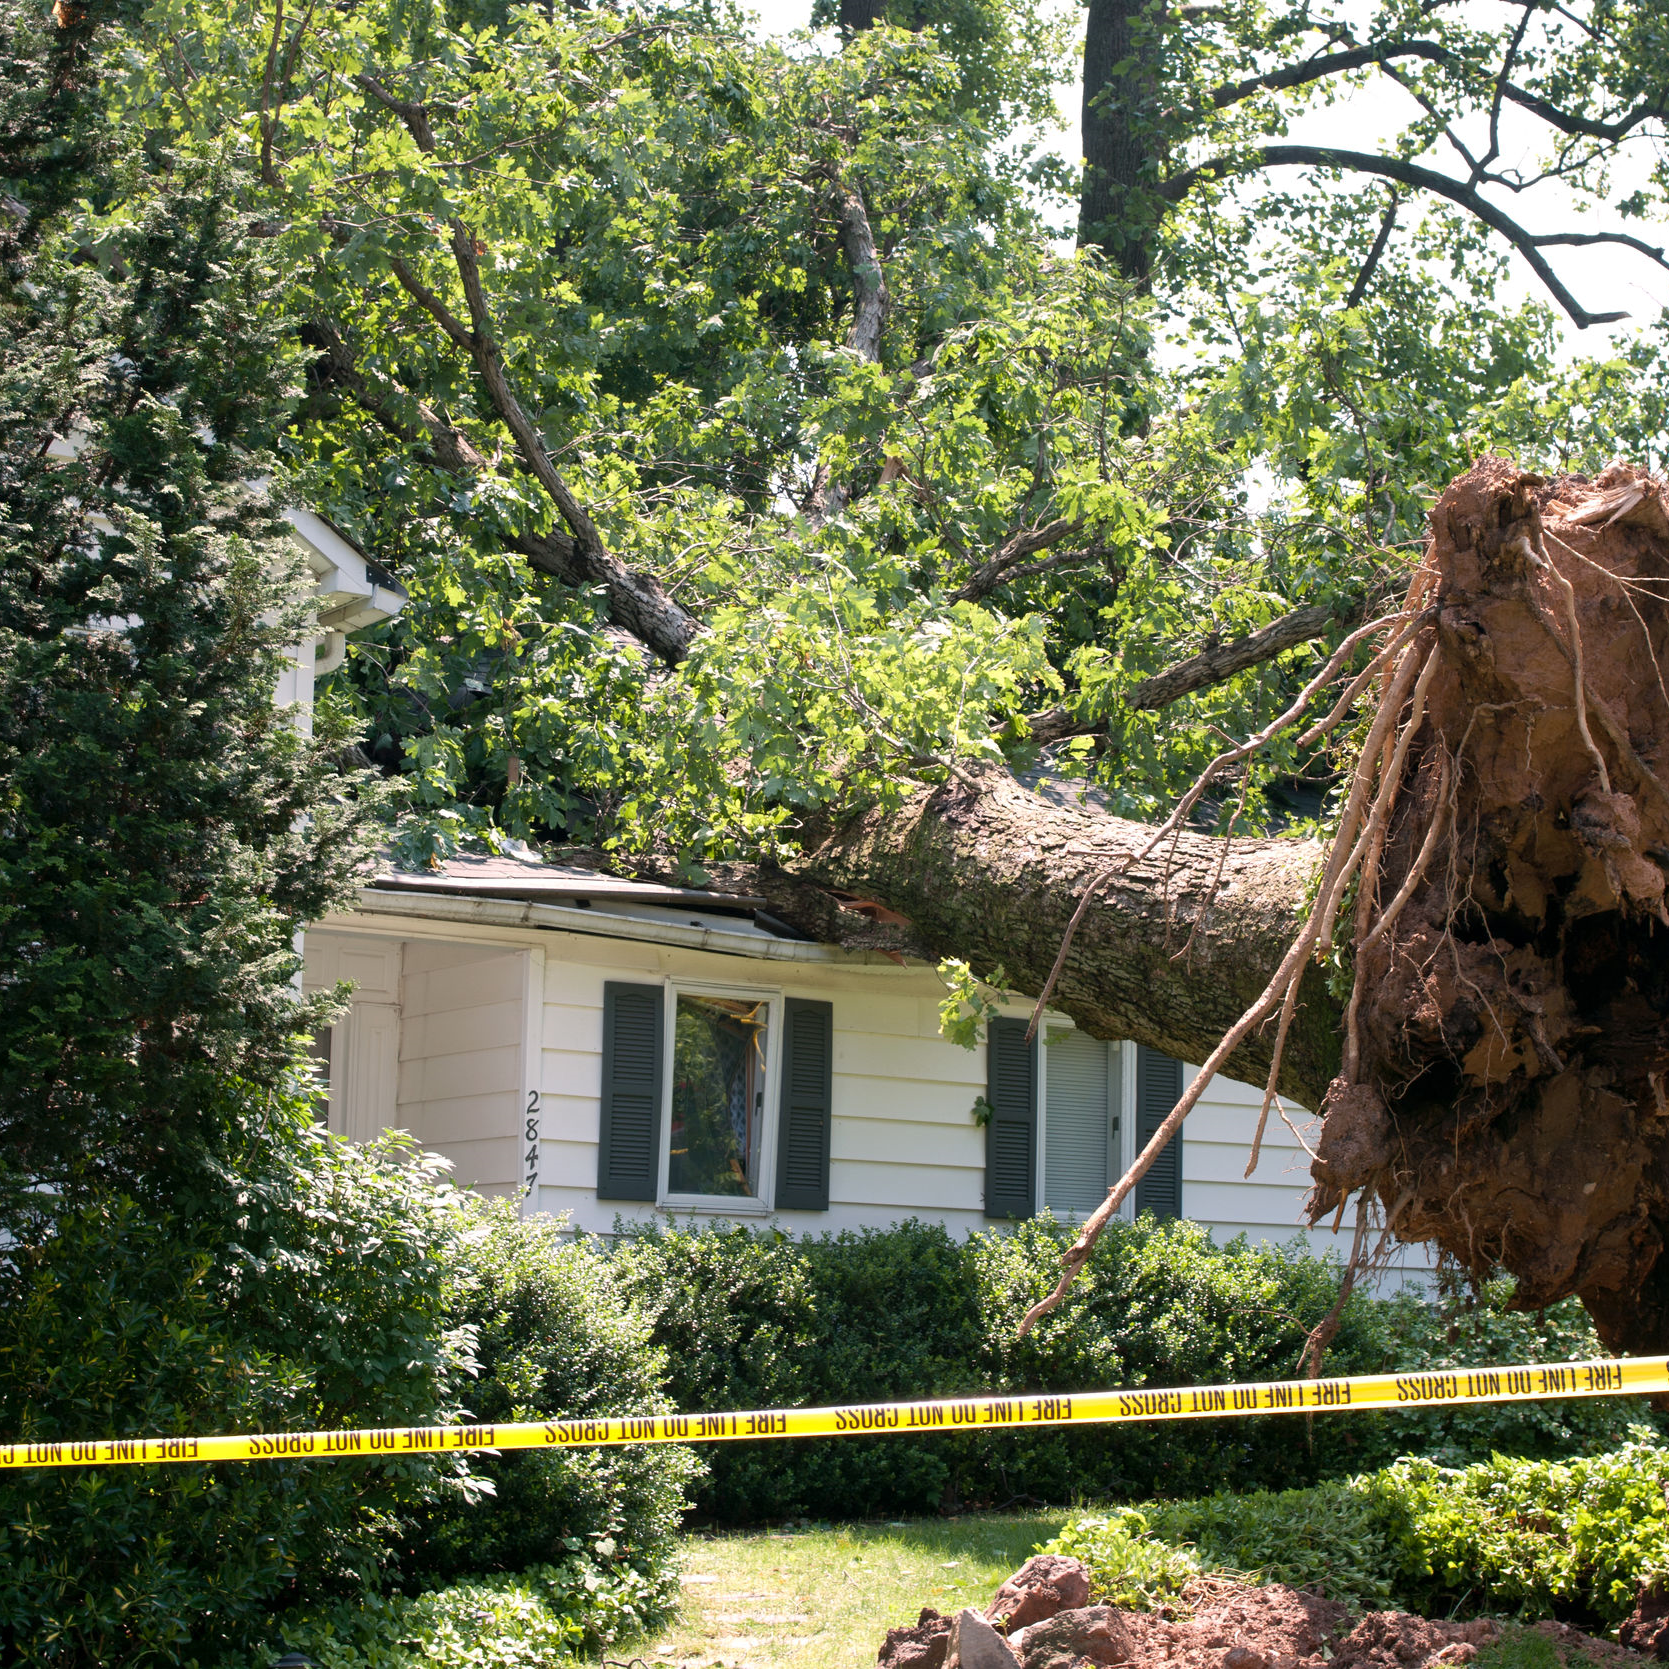 A tree falls on a roof after a storm.